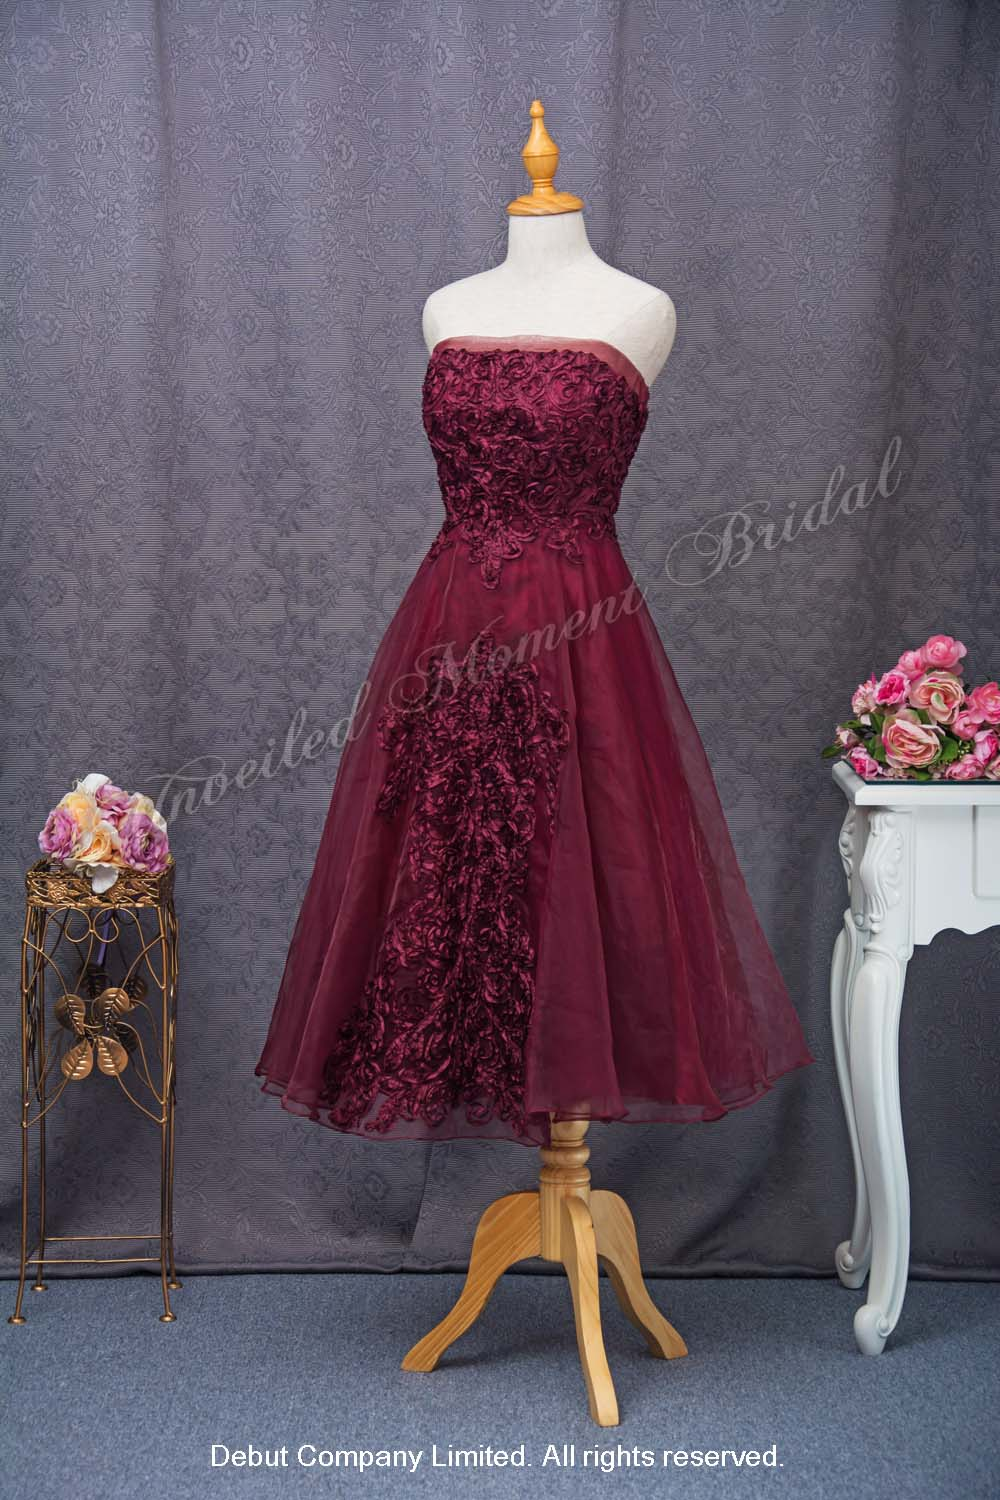 Strapless, short skirt with accentuated flowers party dress. Colour: Purple 無袖low-cut, 立体花飾, 紫色短款晩宴裙